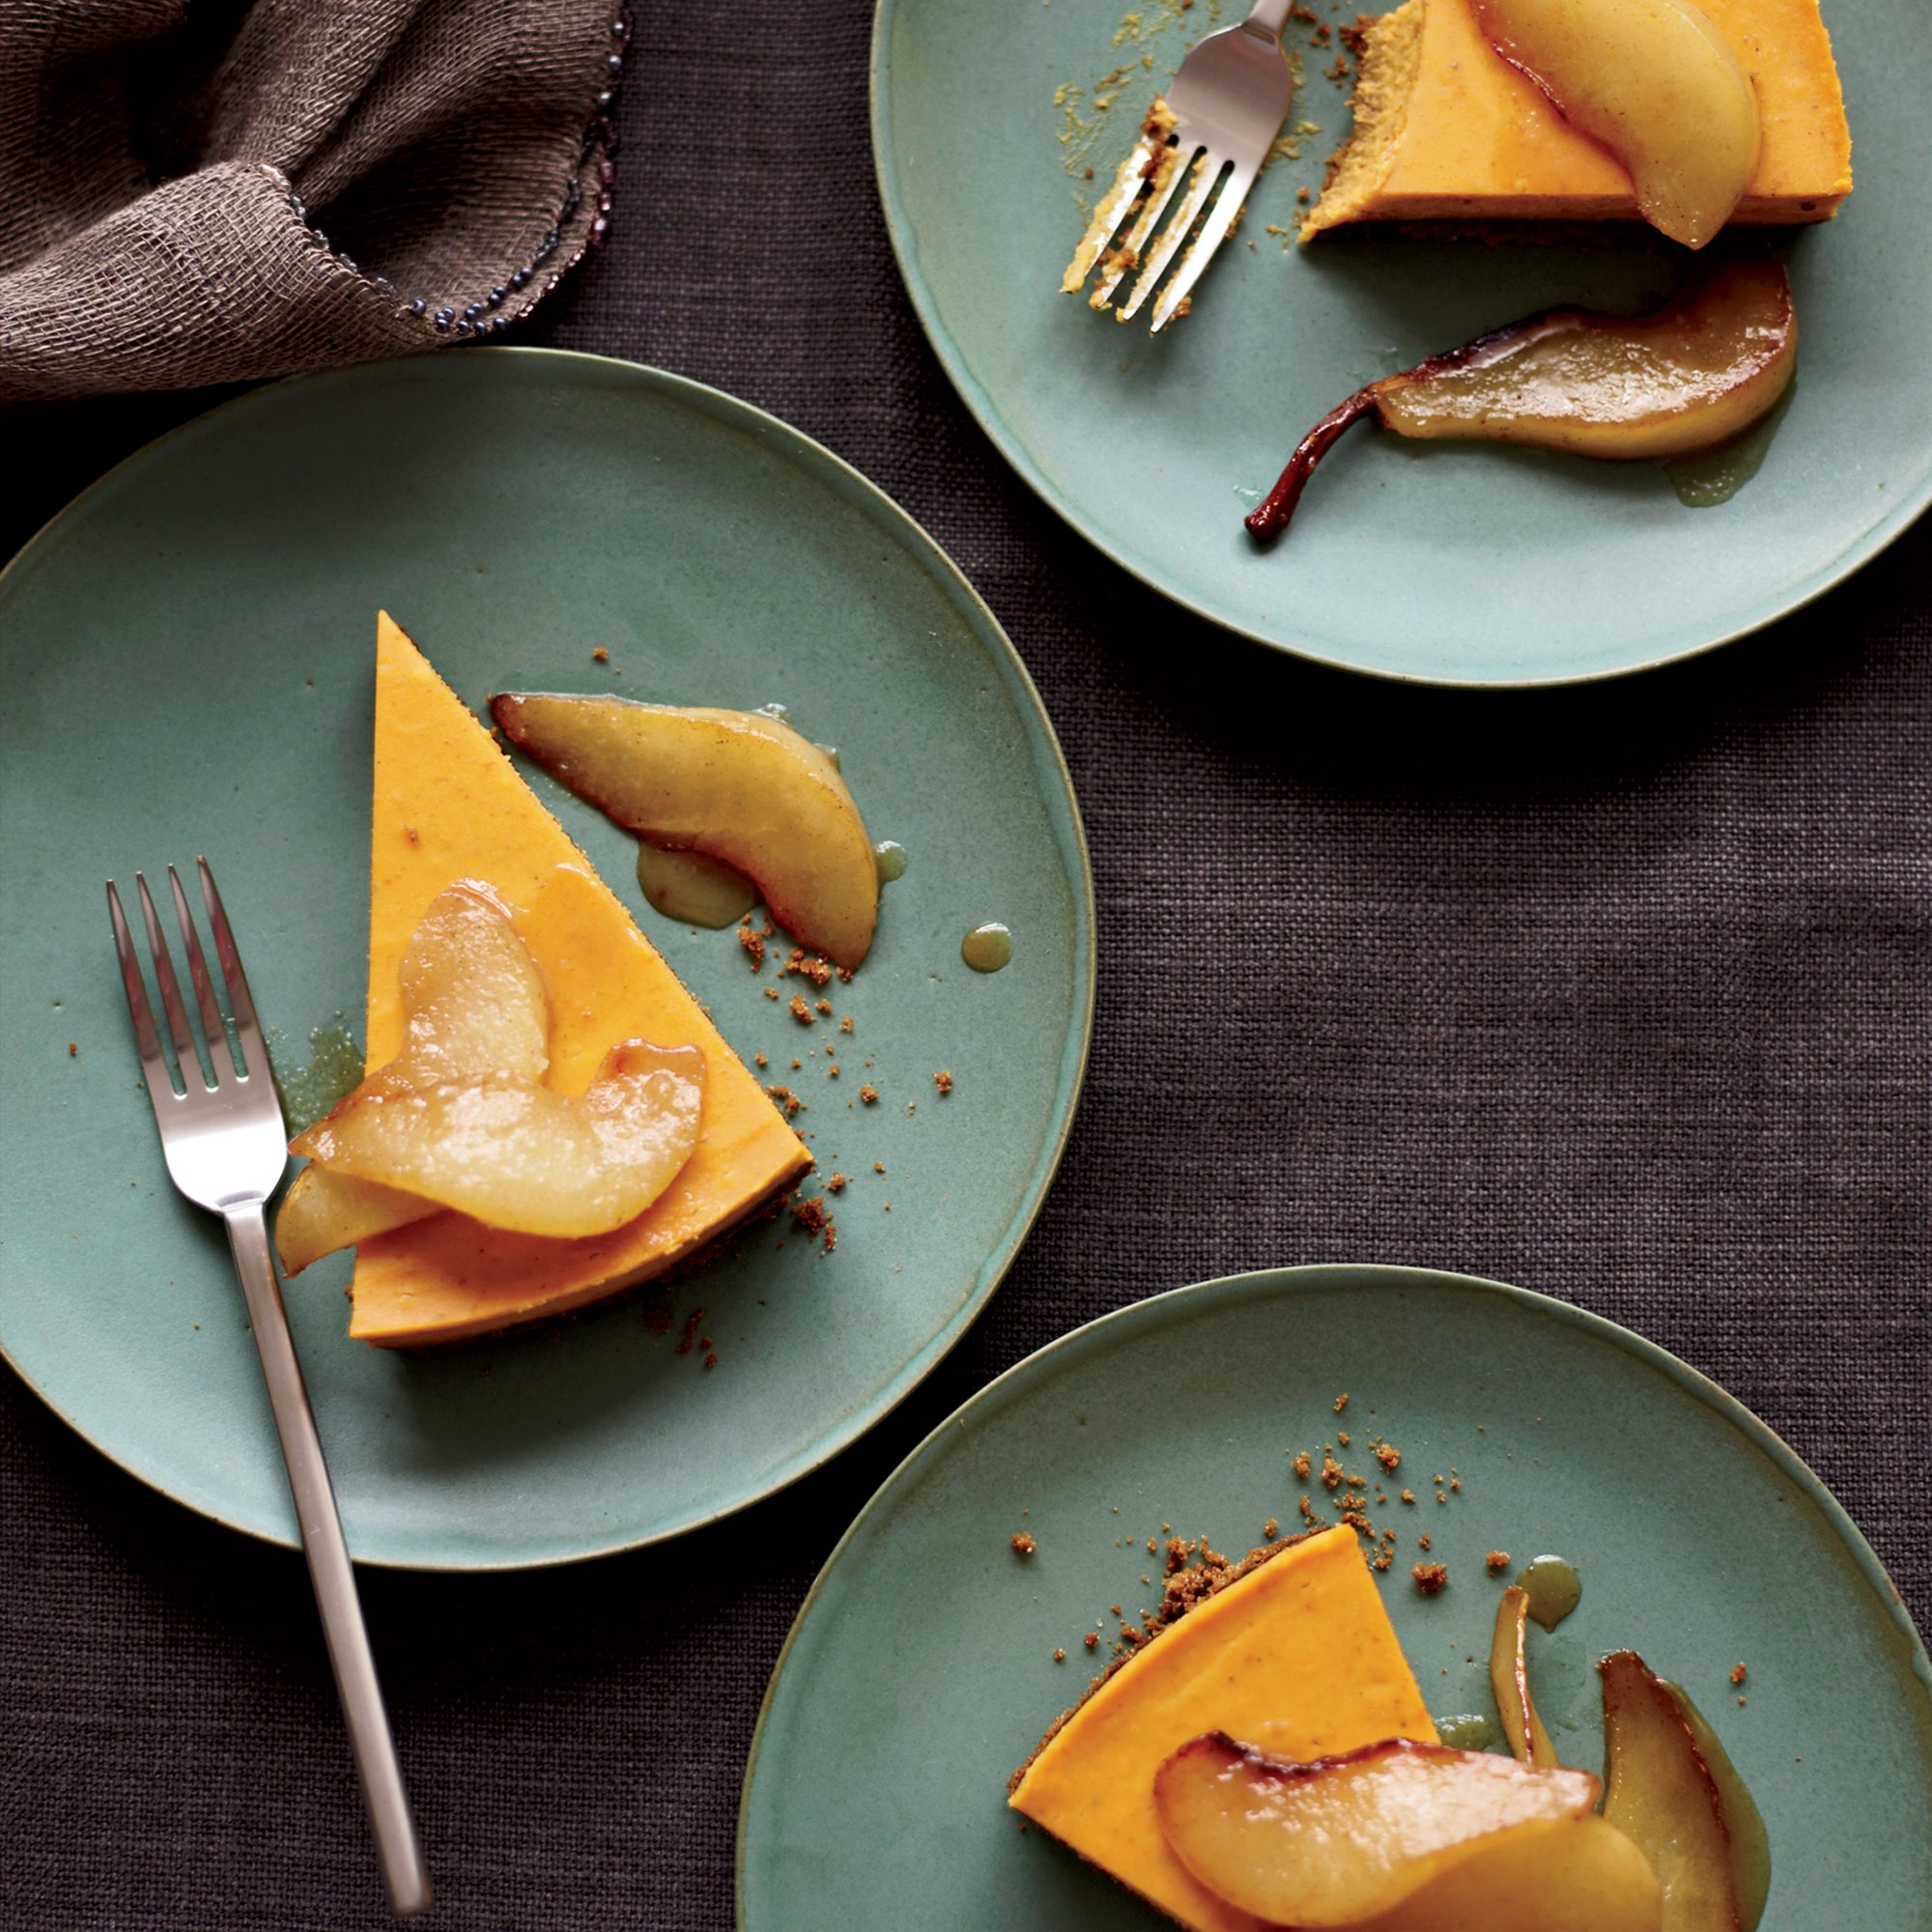 201011-r-pumpkin-cheesecake.jpg